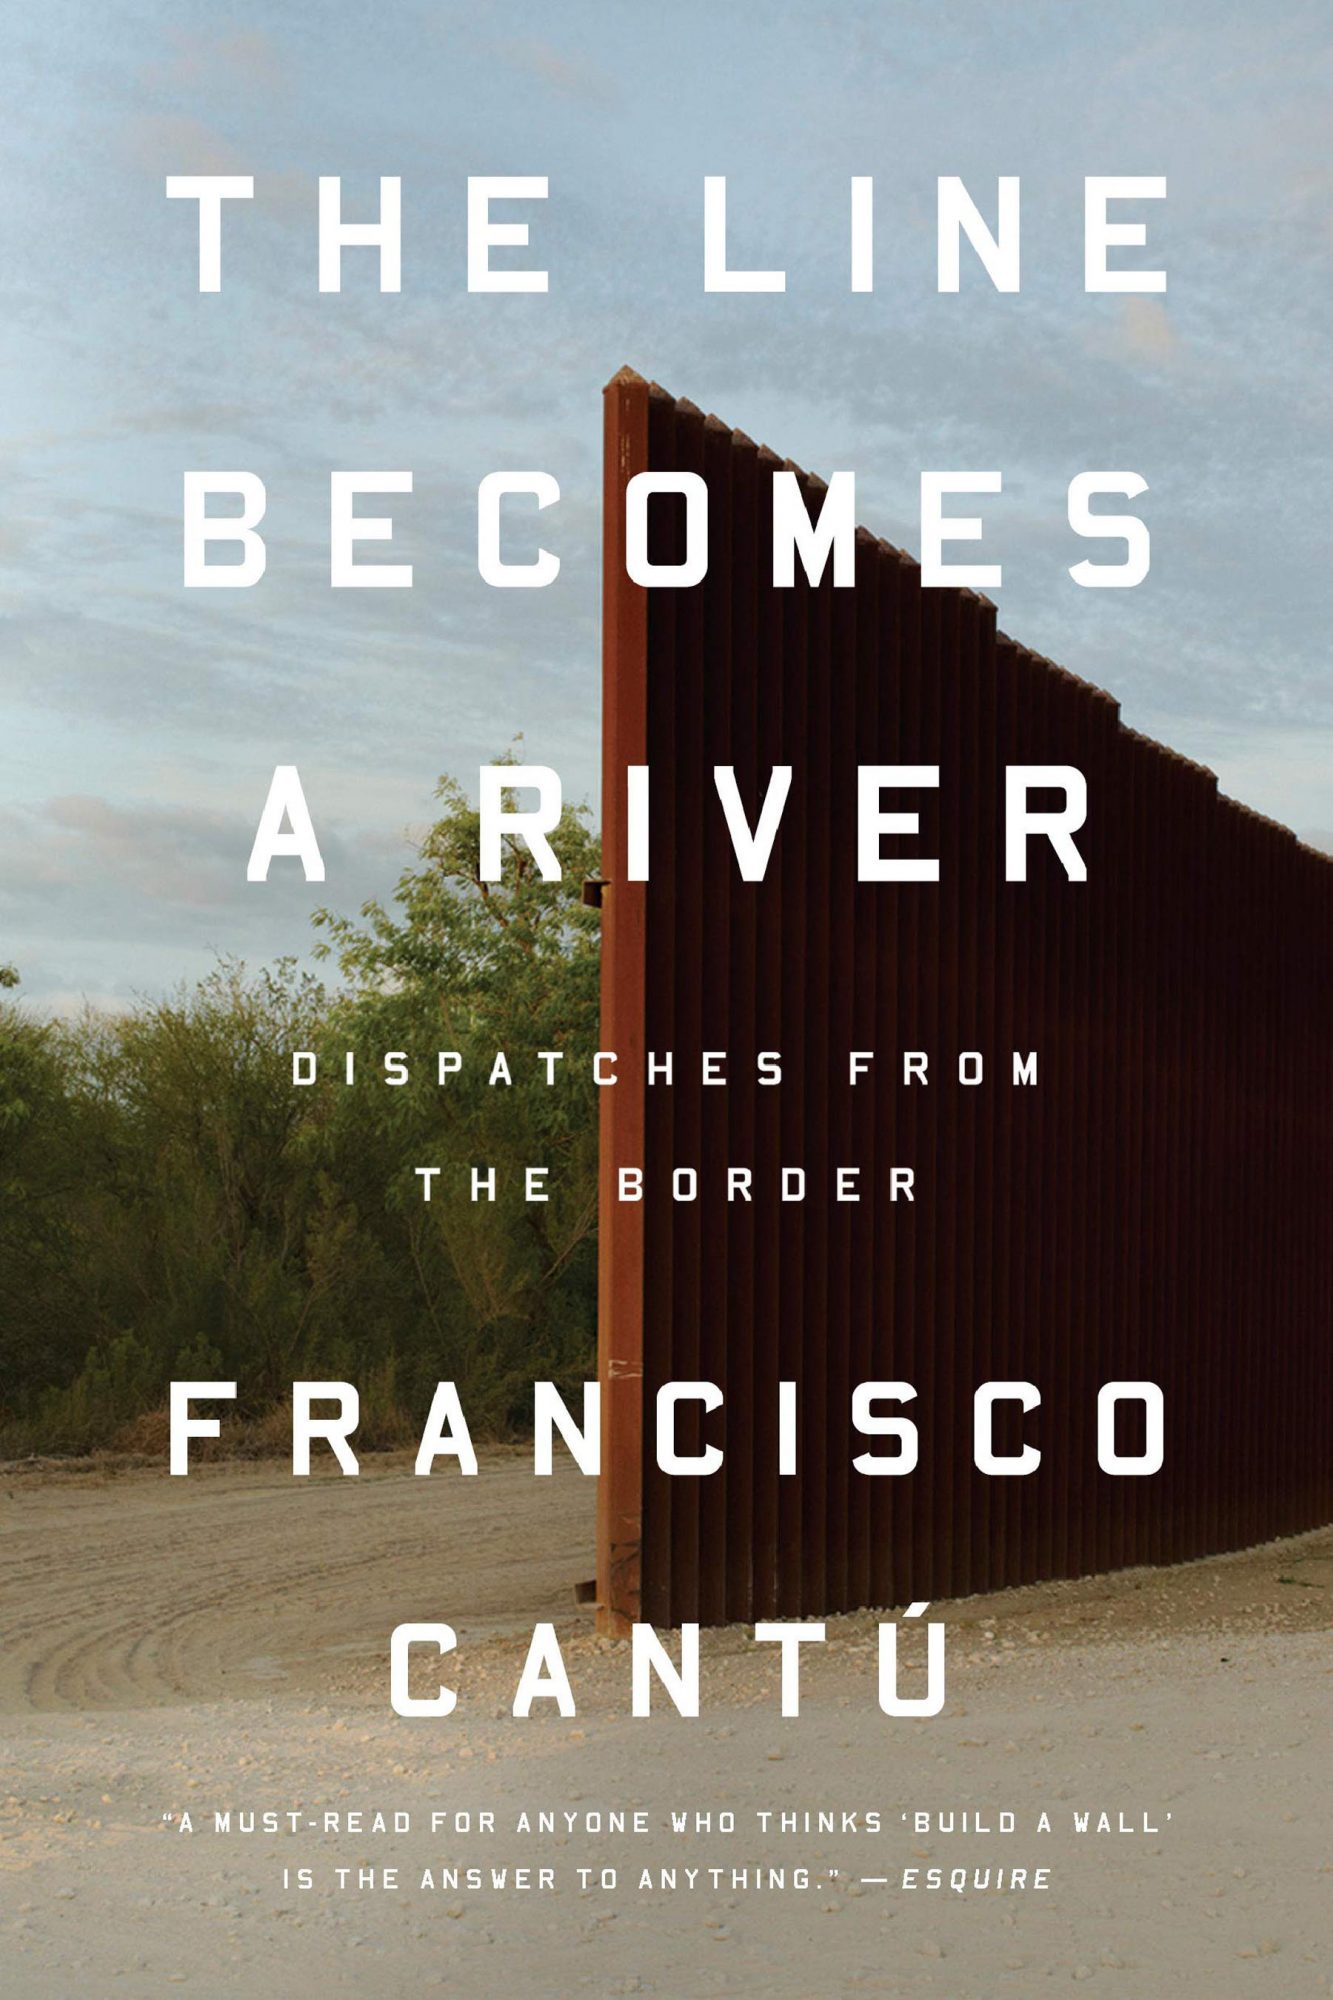 The Line Becomes a River, by Francisco Cantú